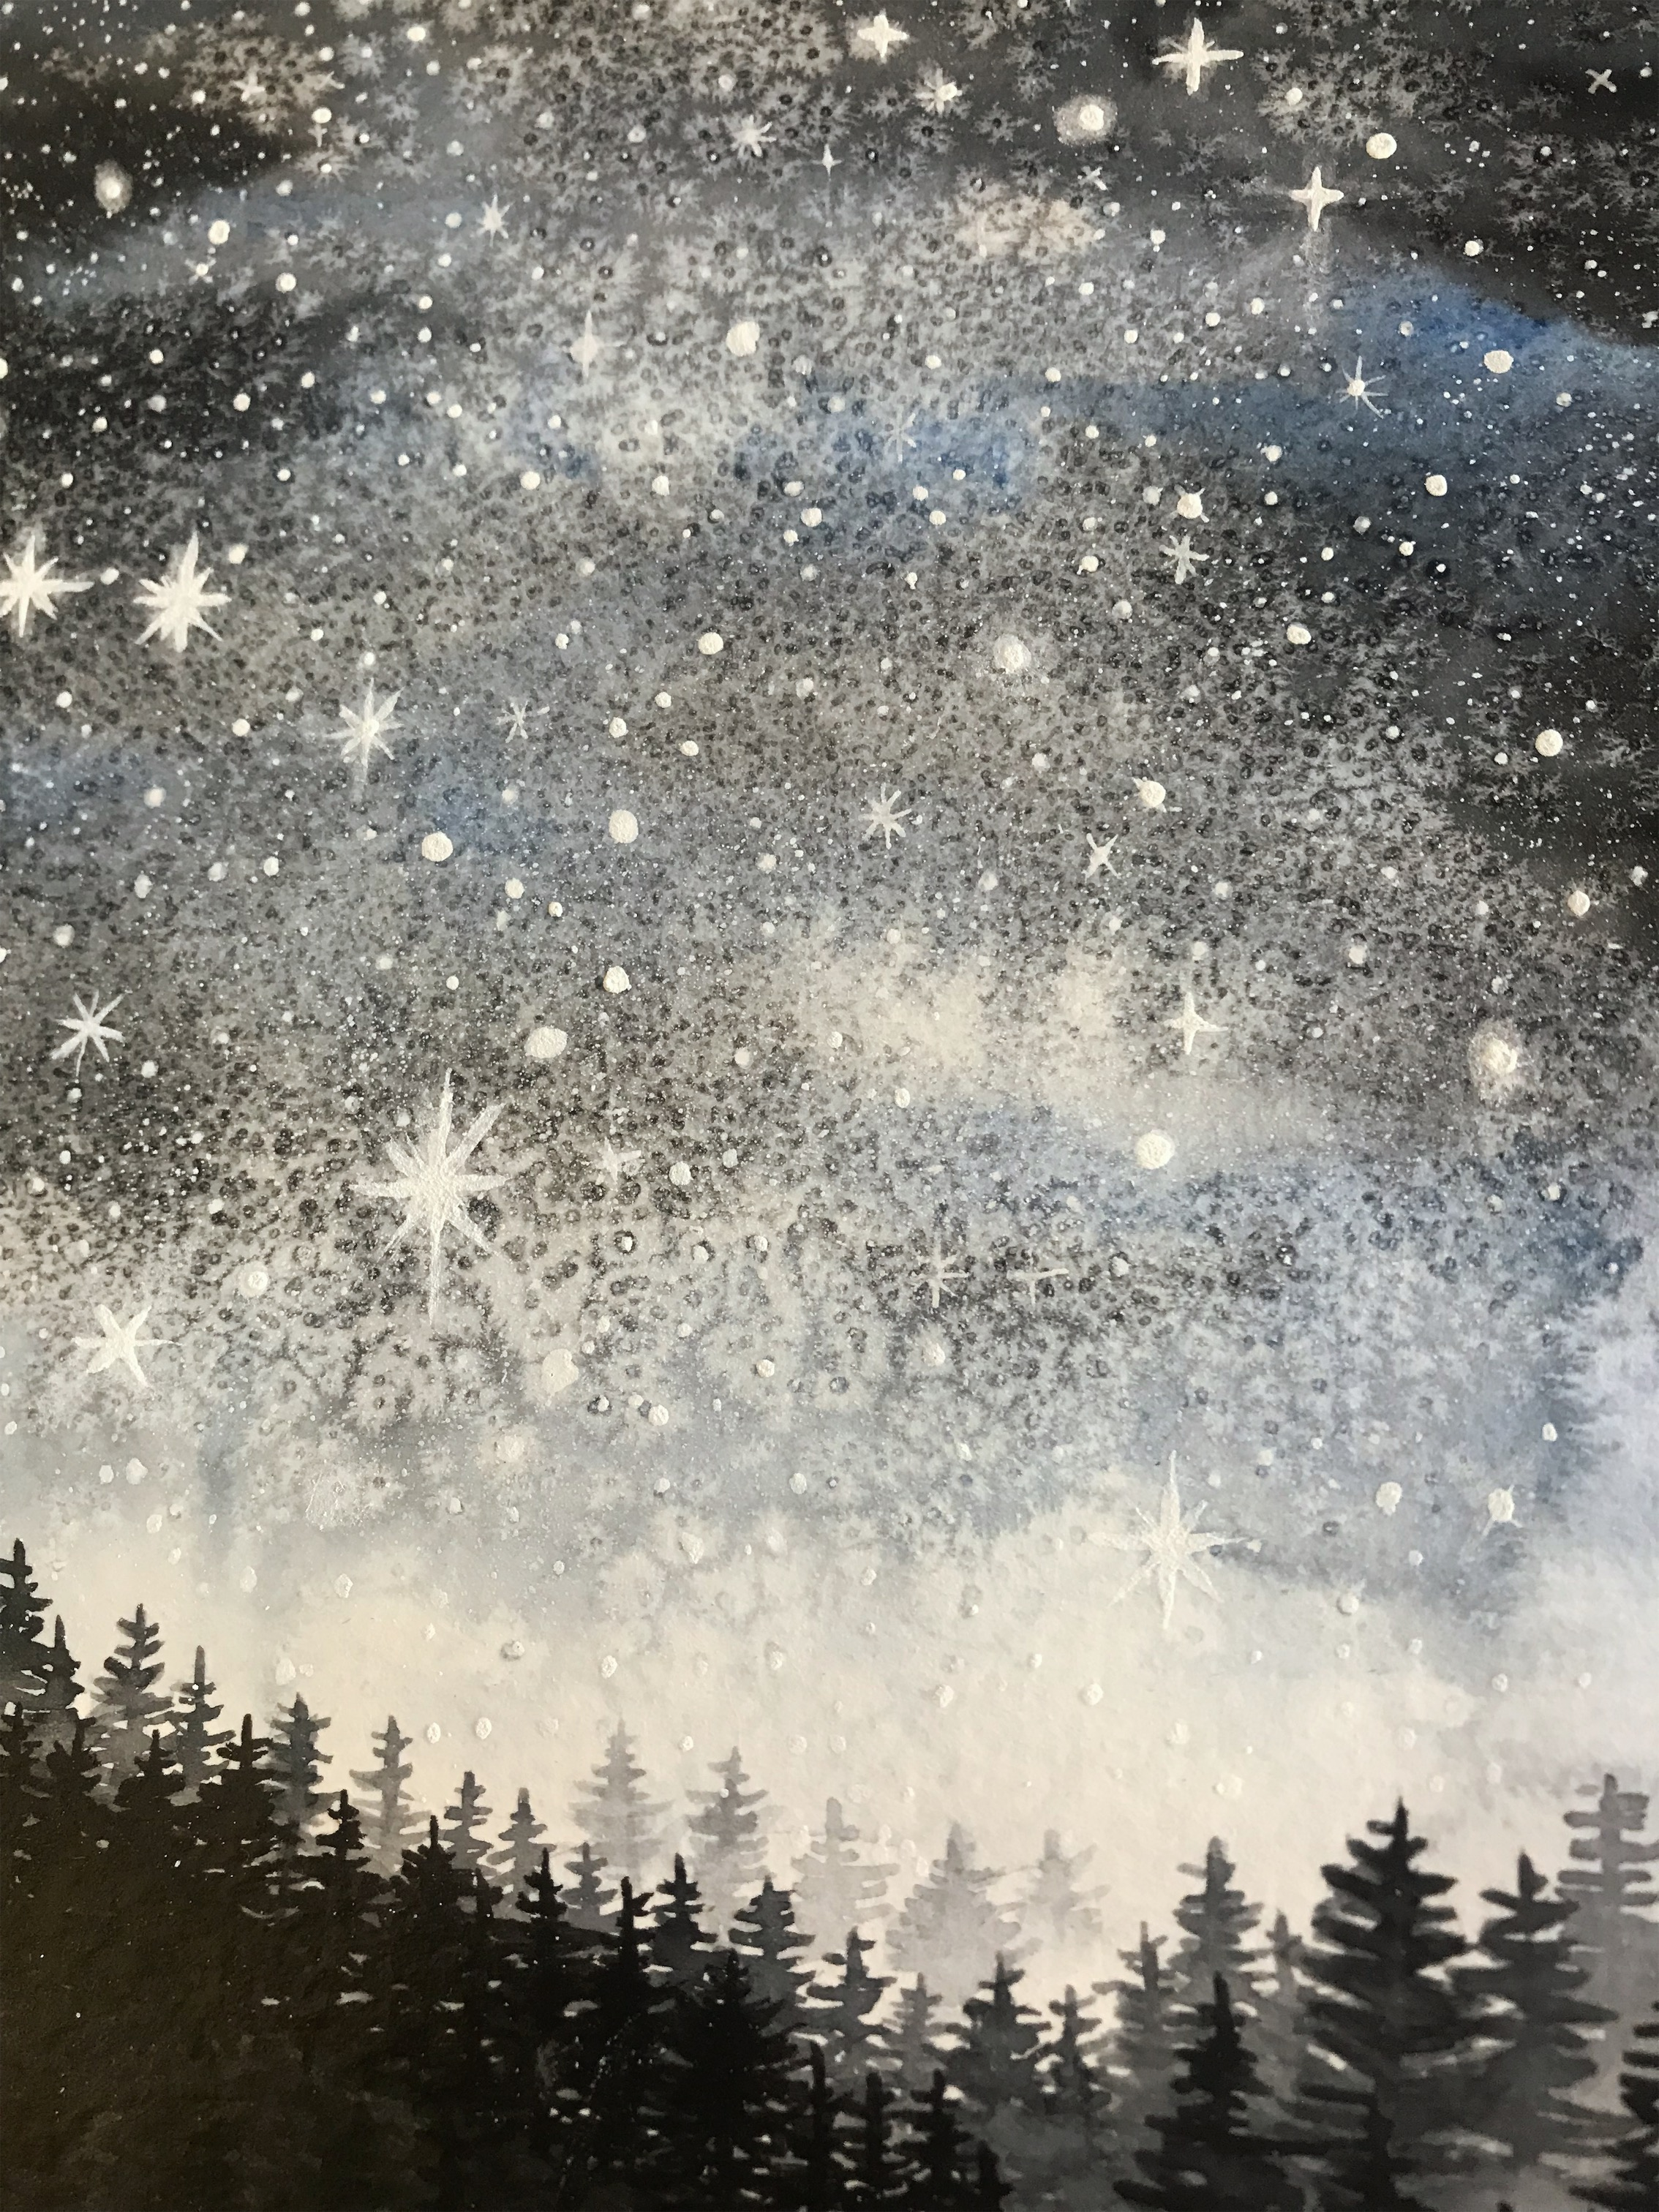 Glow in the dark misty forest scenes by rachael caringella | Tree talker art